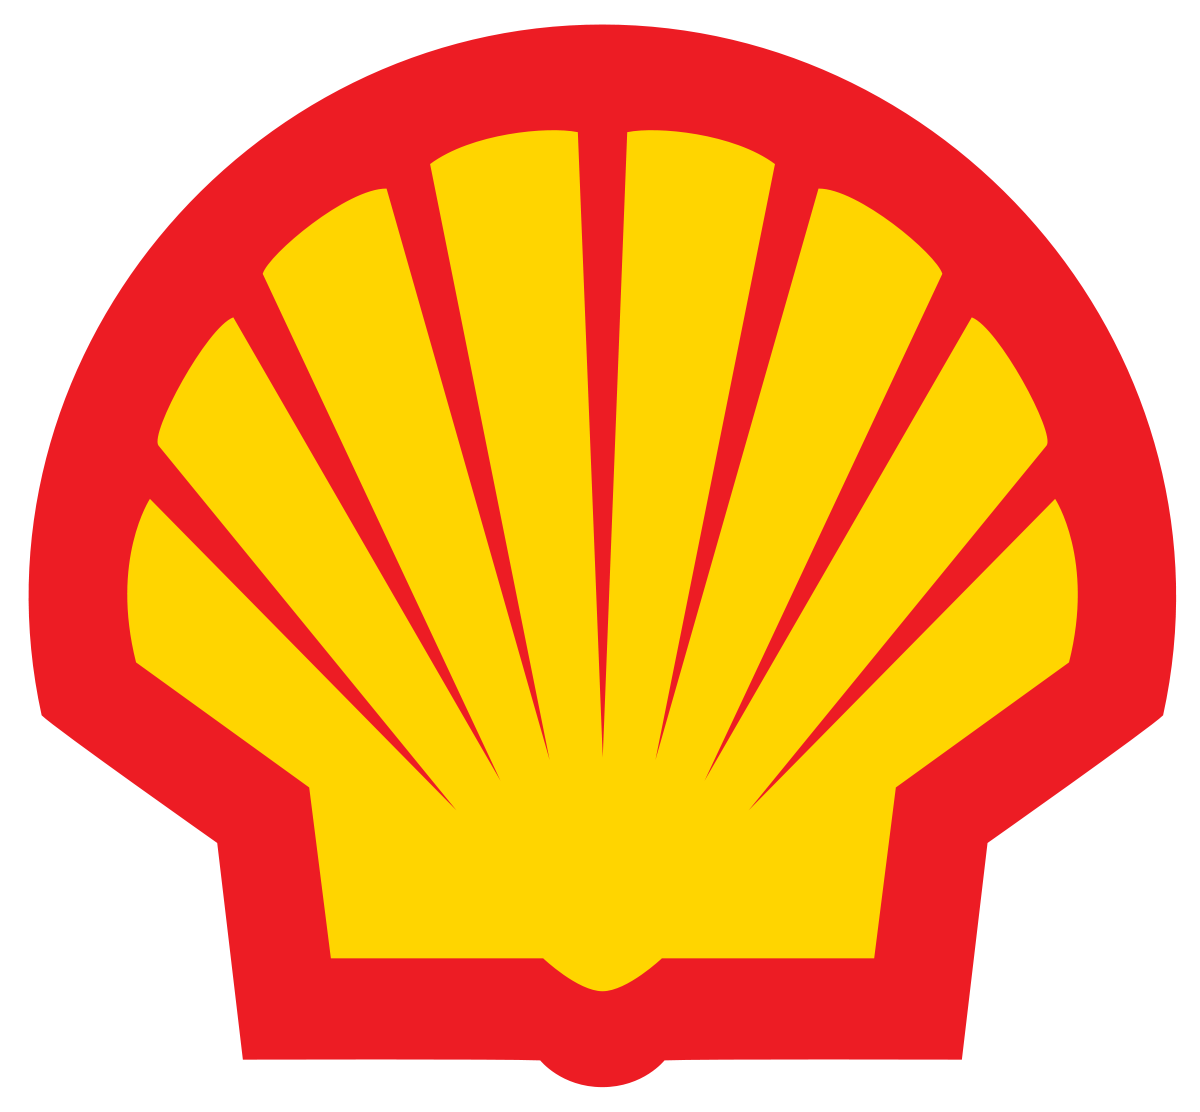 Shell looking to sell stake in Philippines' Malampaya gas project - SweetCrudeReports